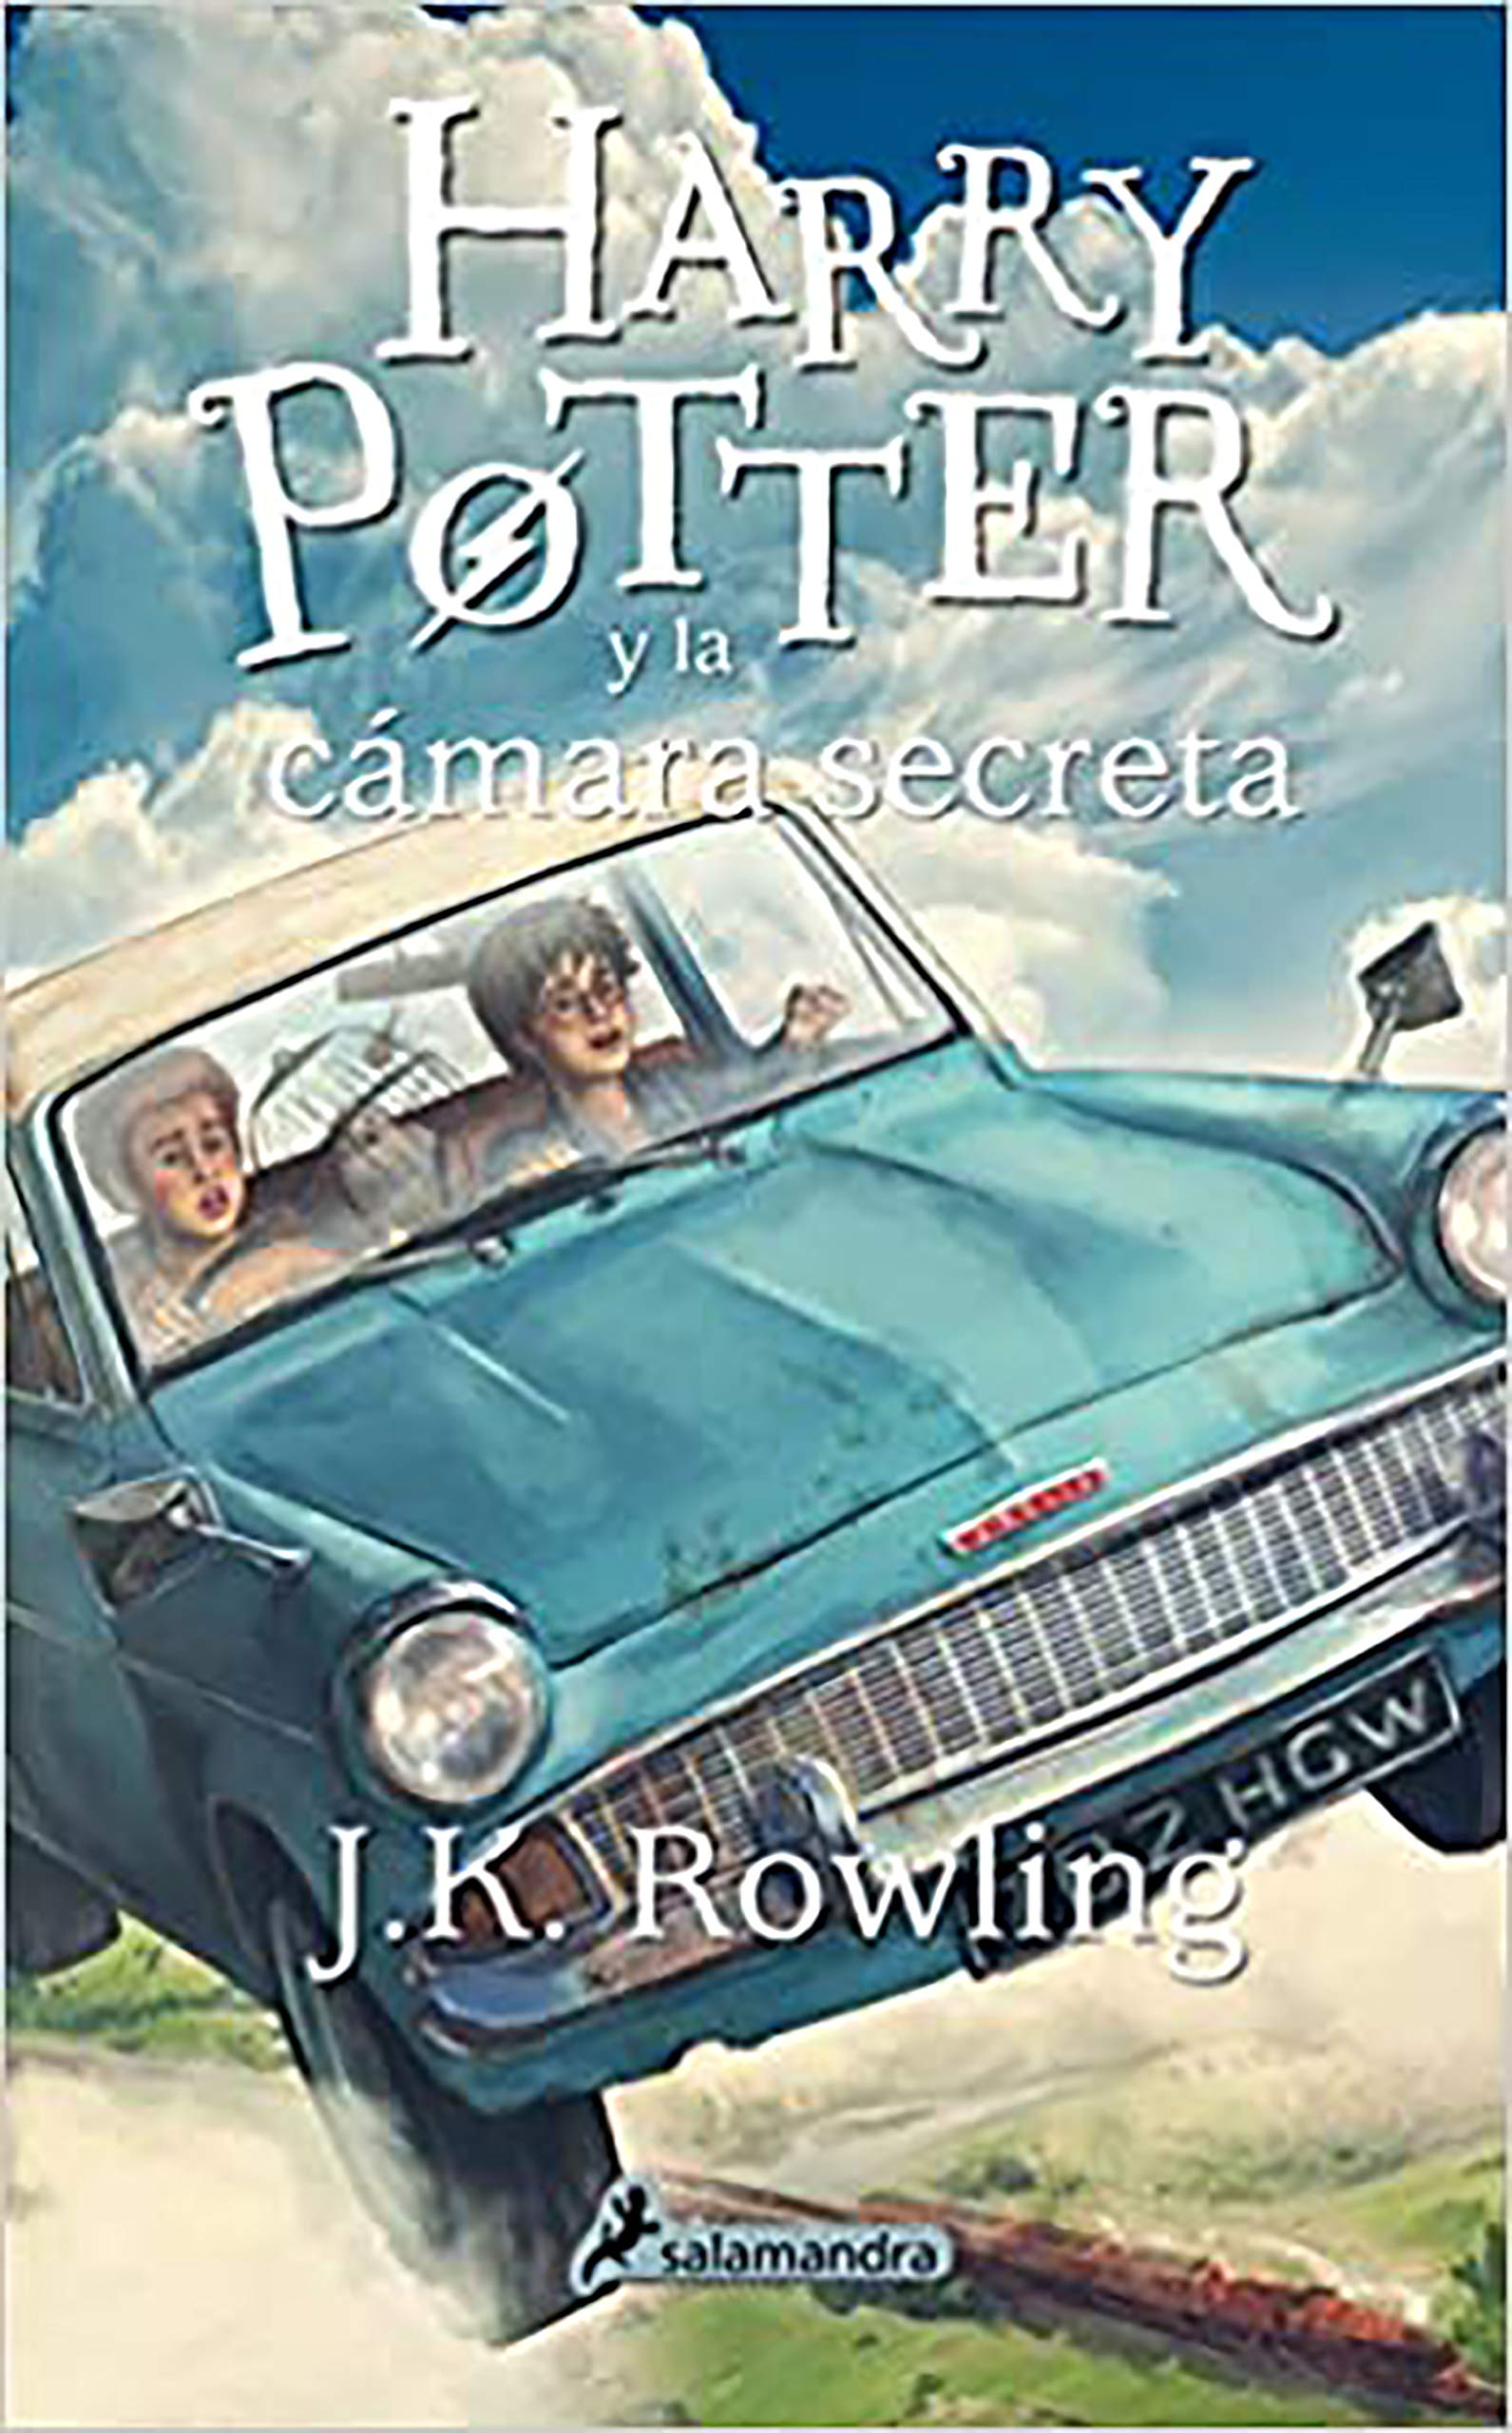 SPA-HARRY POTTER Y LA CAMARA S: Amazon.es: Rowling, J. K.: Libros